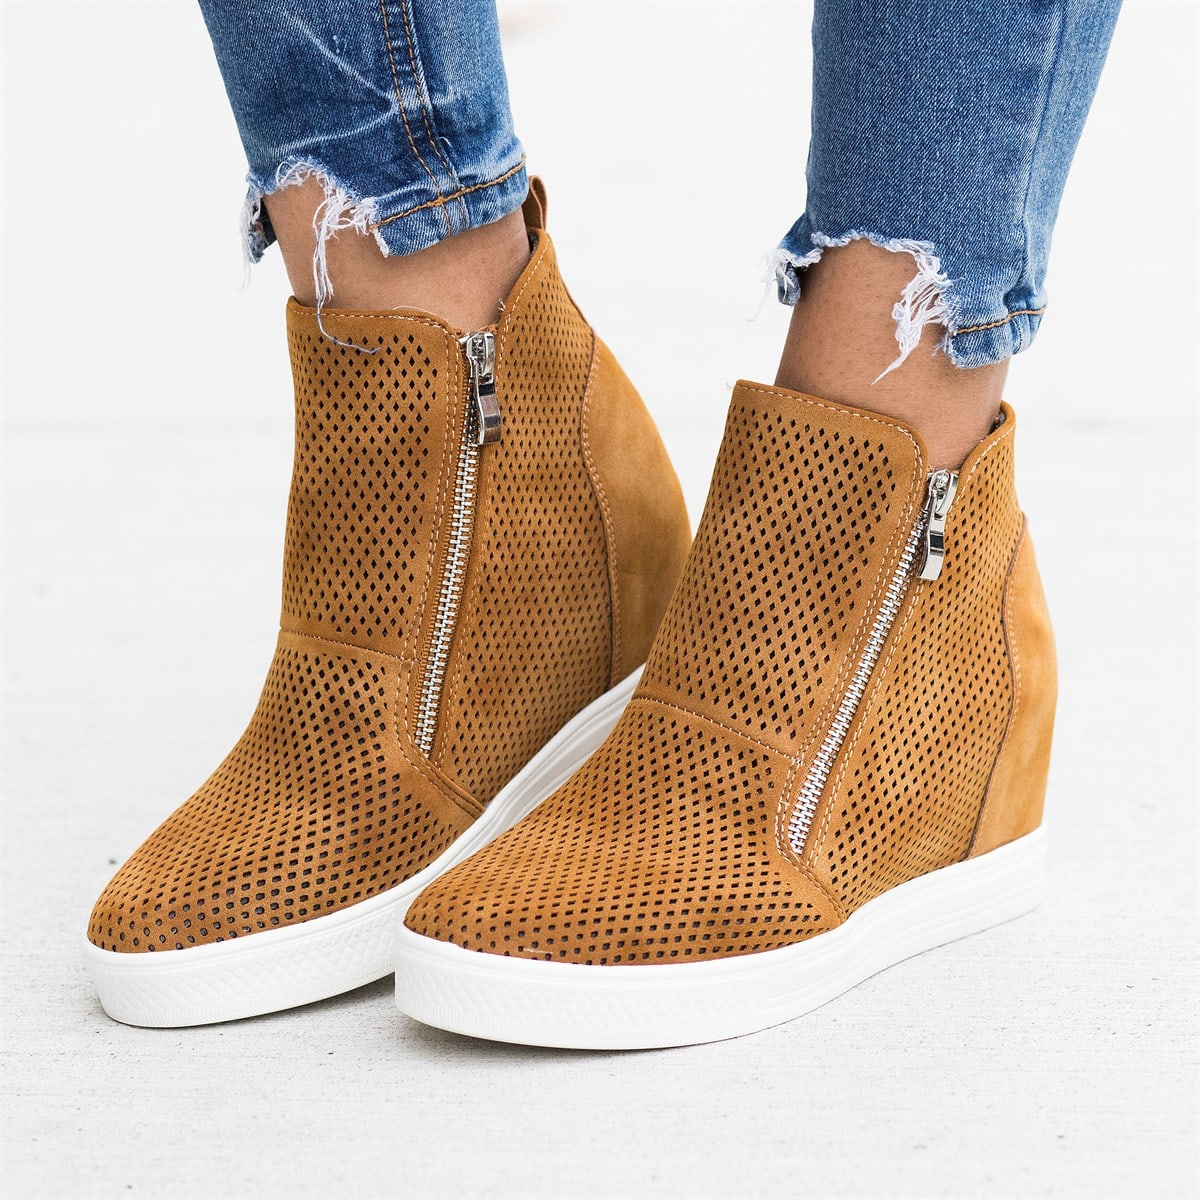 LOOZYKIT 2019 PU Leather Woman Casual Shoes Within The Higher Pure Fashion Side Zipper Sneakers Anti Skid Outsole Ladies Shoes